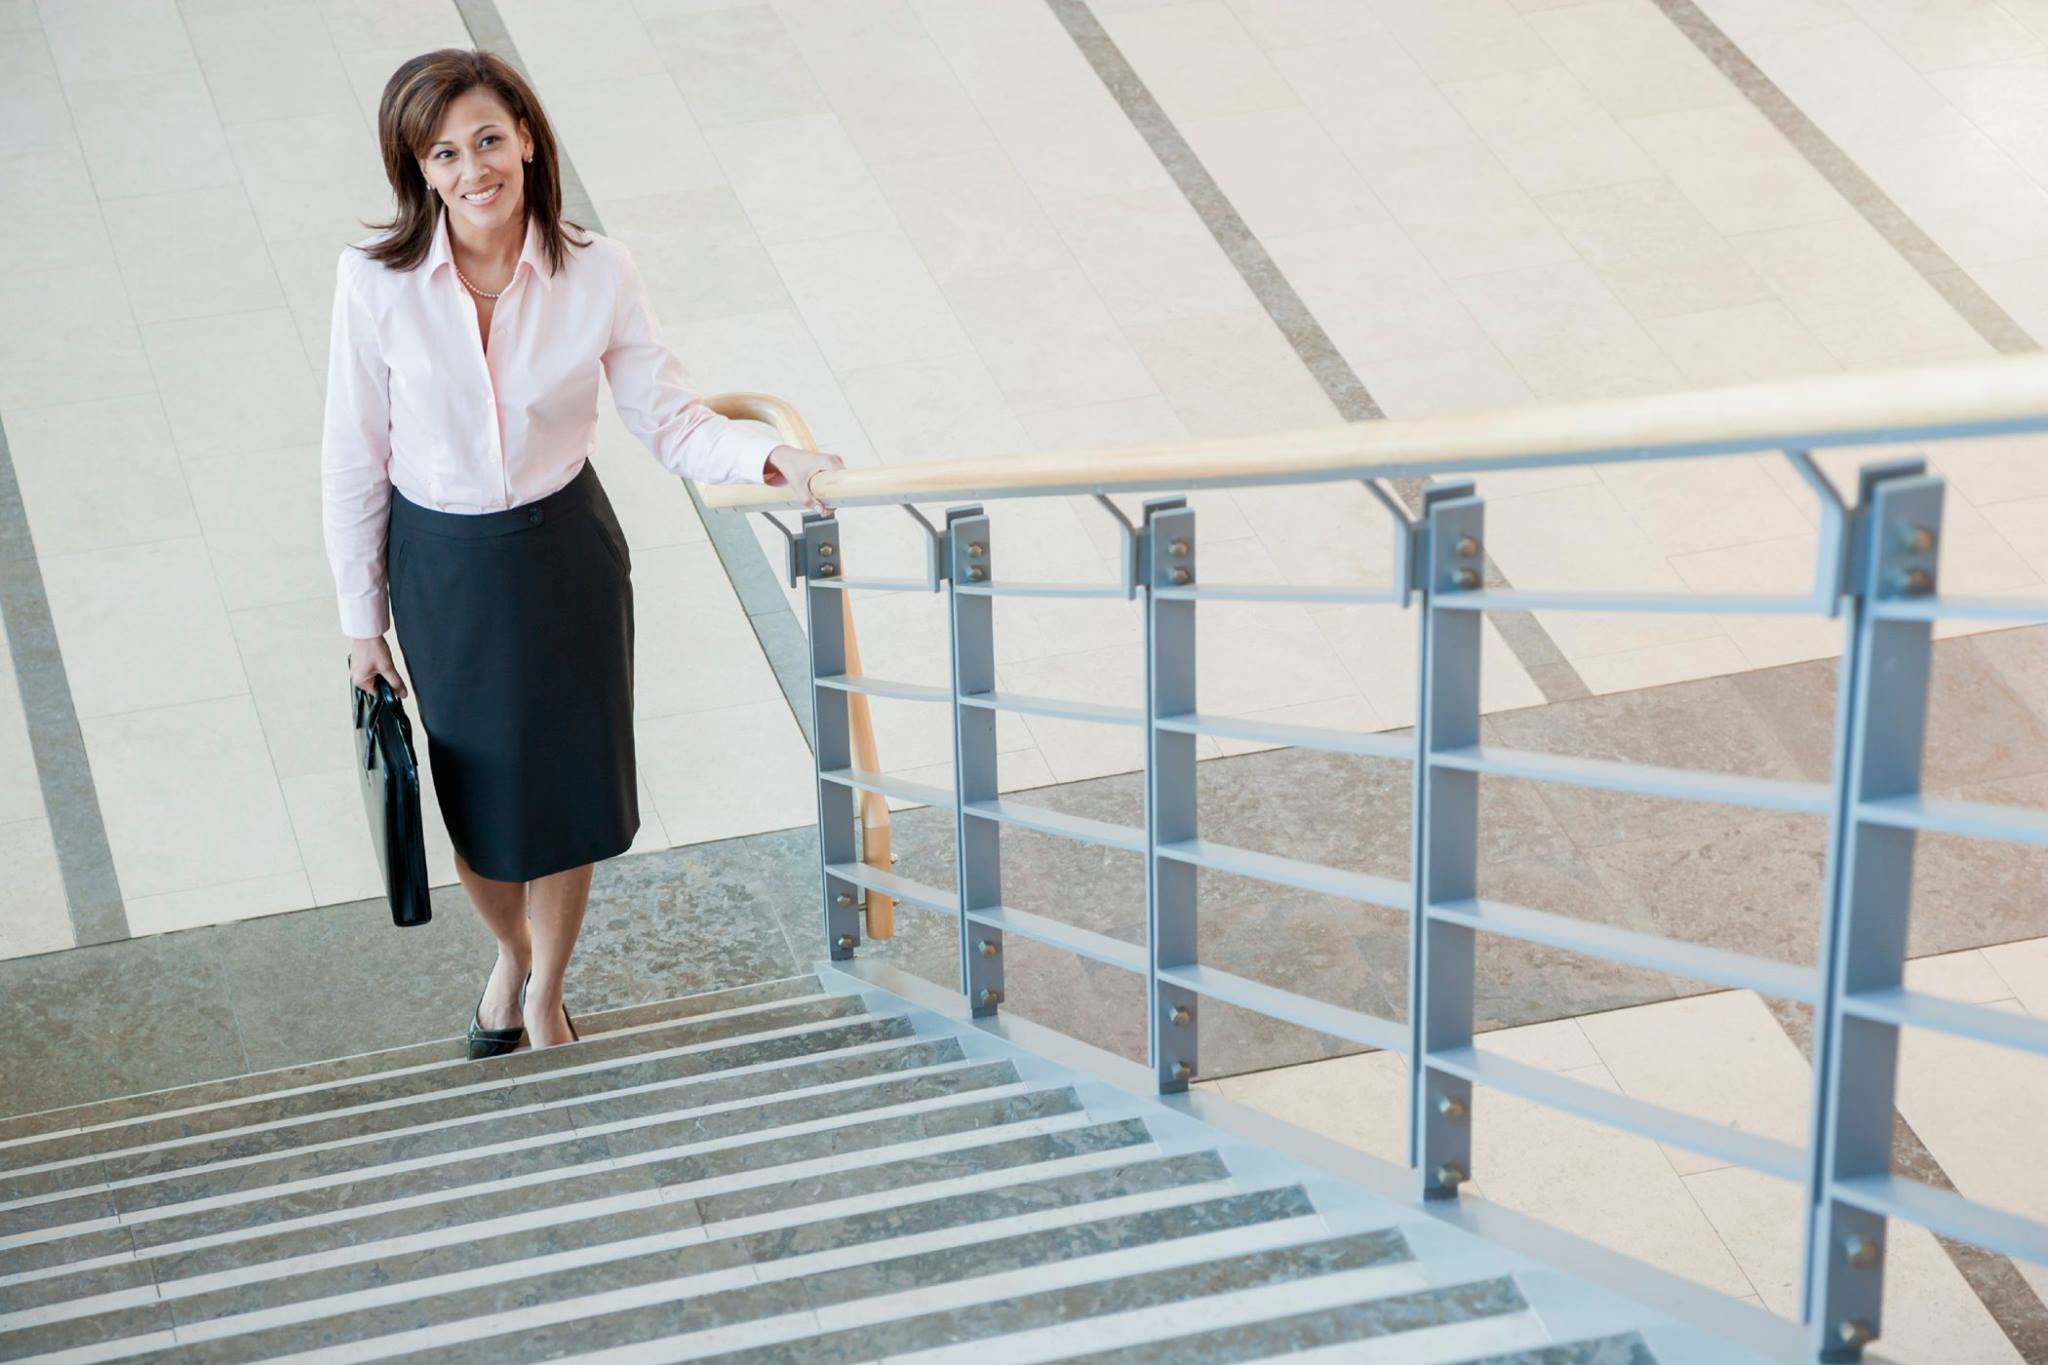 No time to exercise? Climb stairs